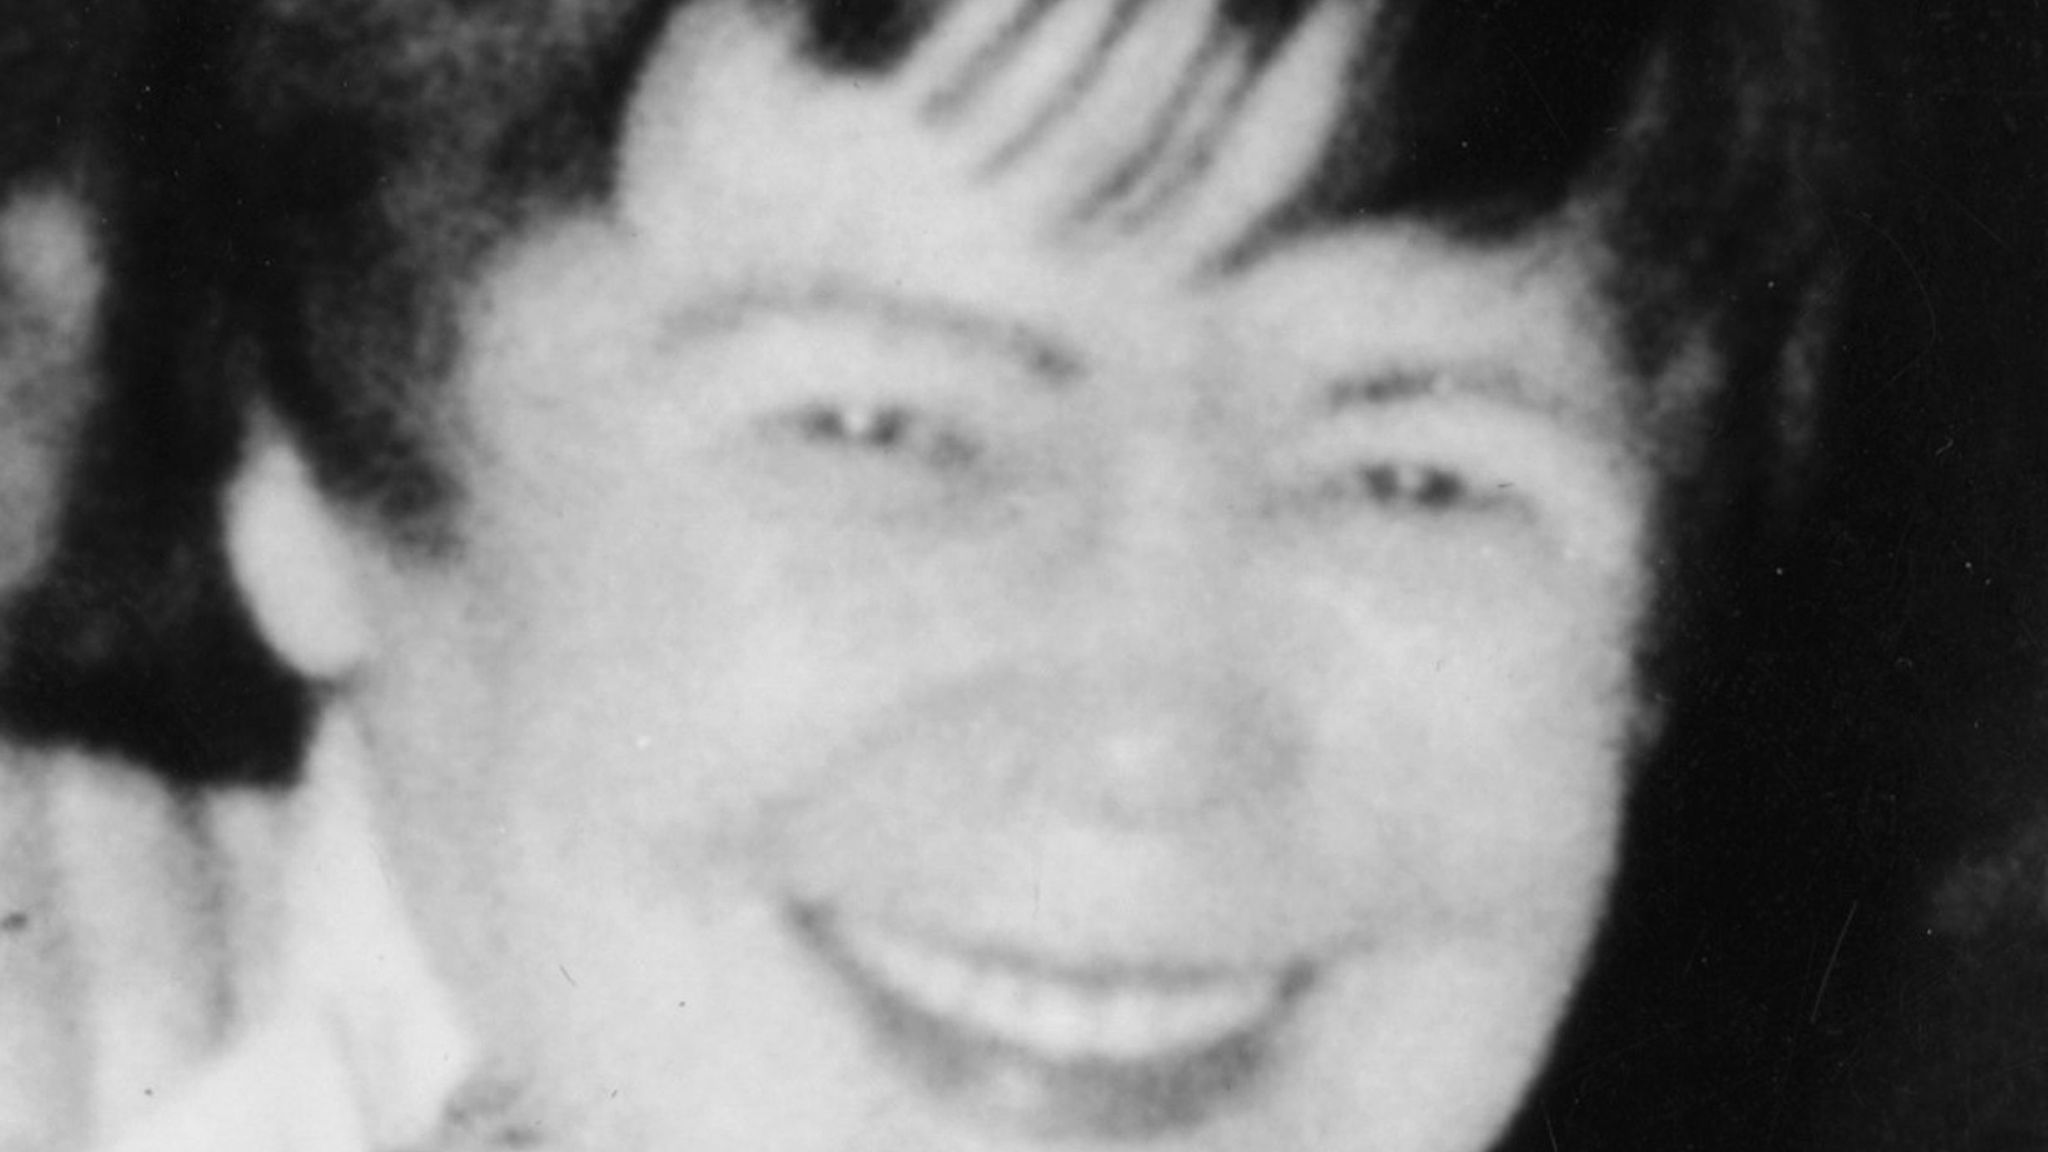 Scottish cold case: Man charged over death of a woman 35 years ago